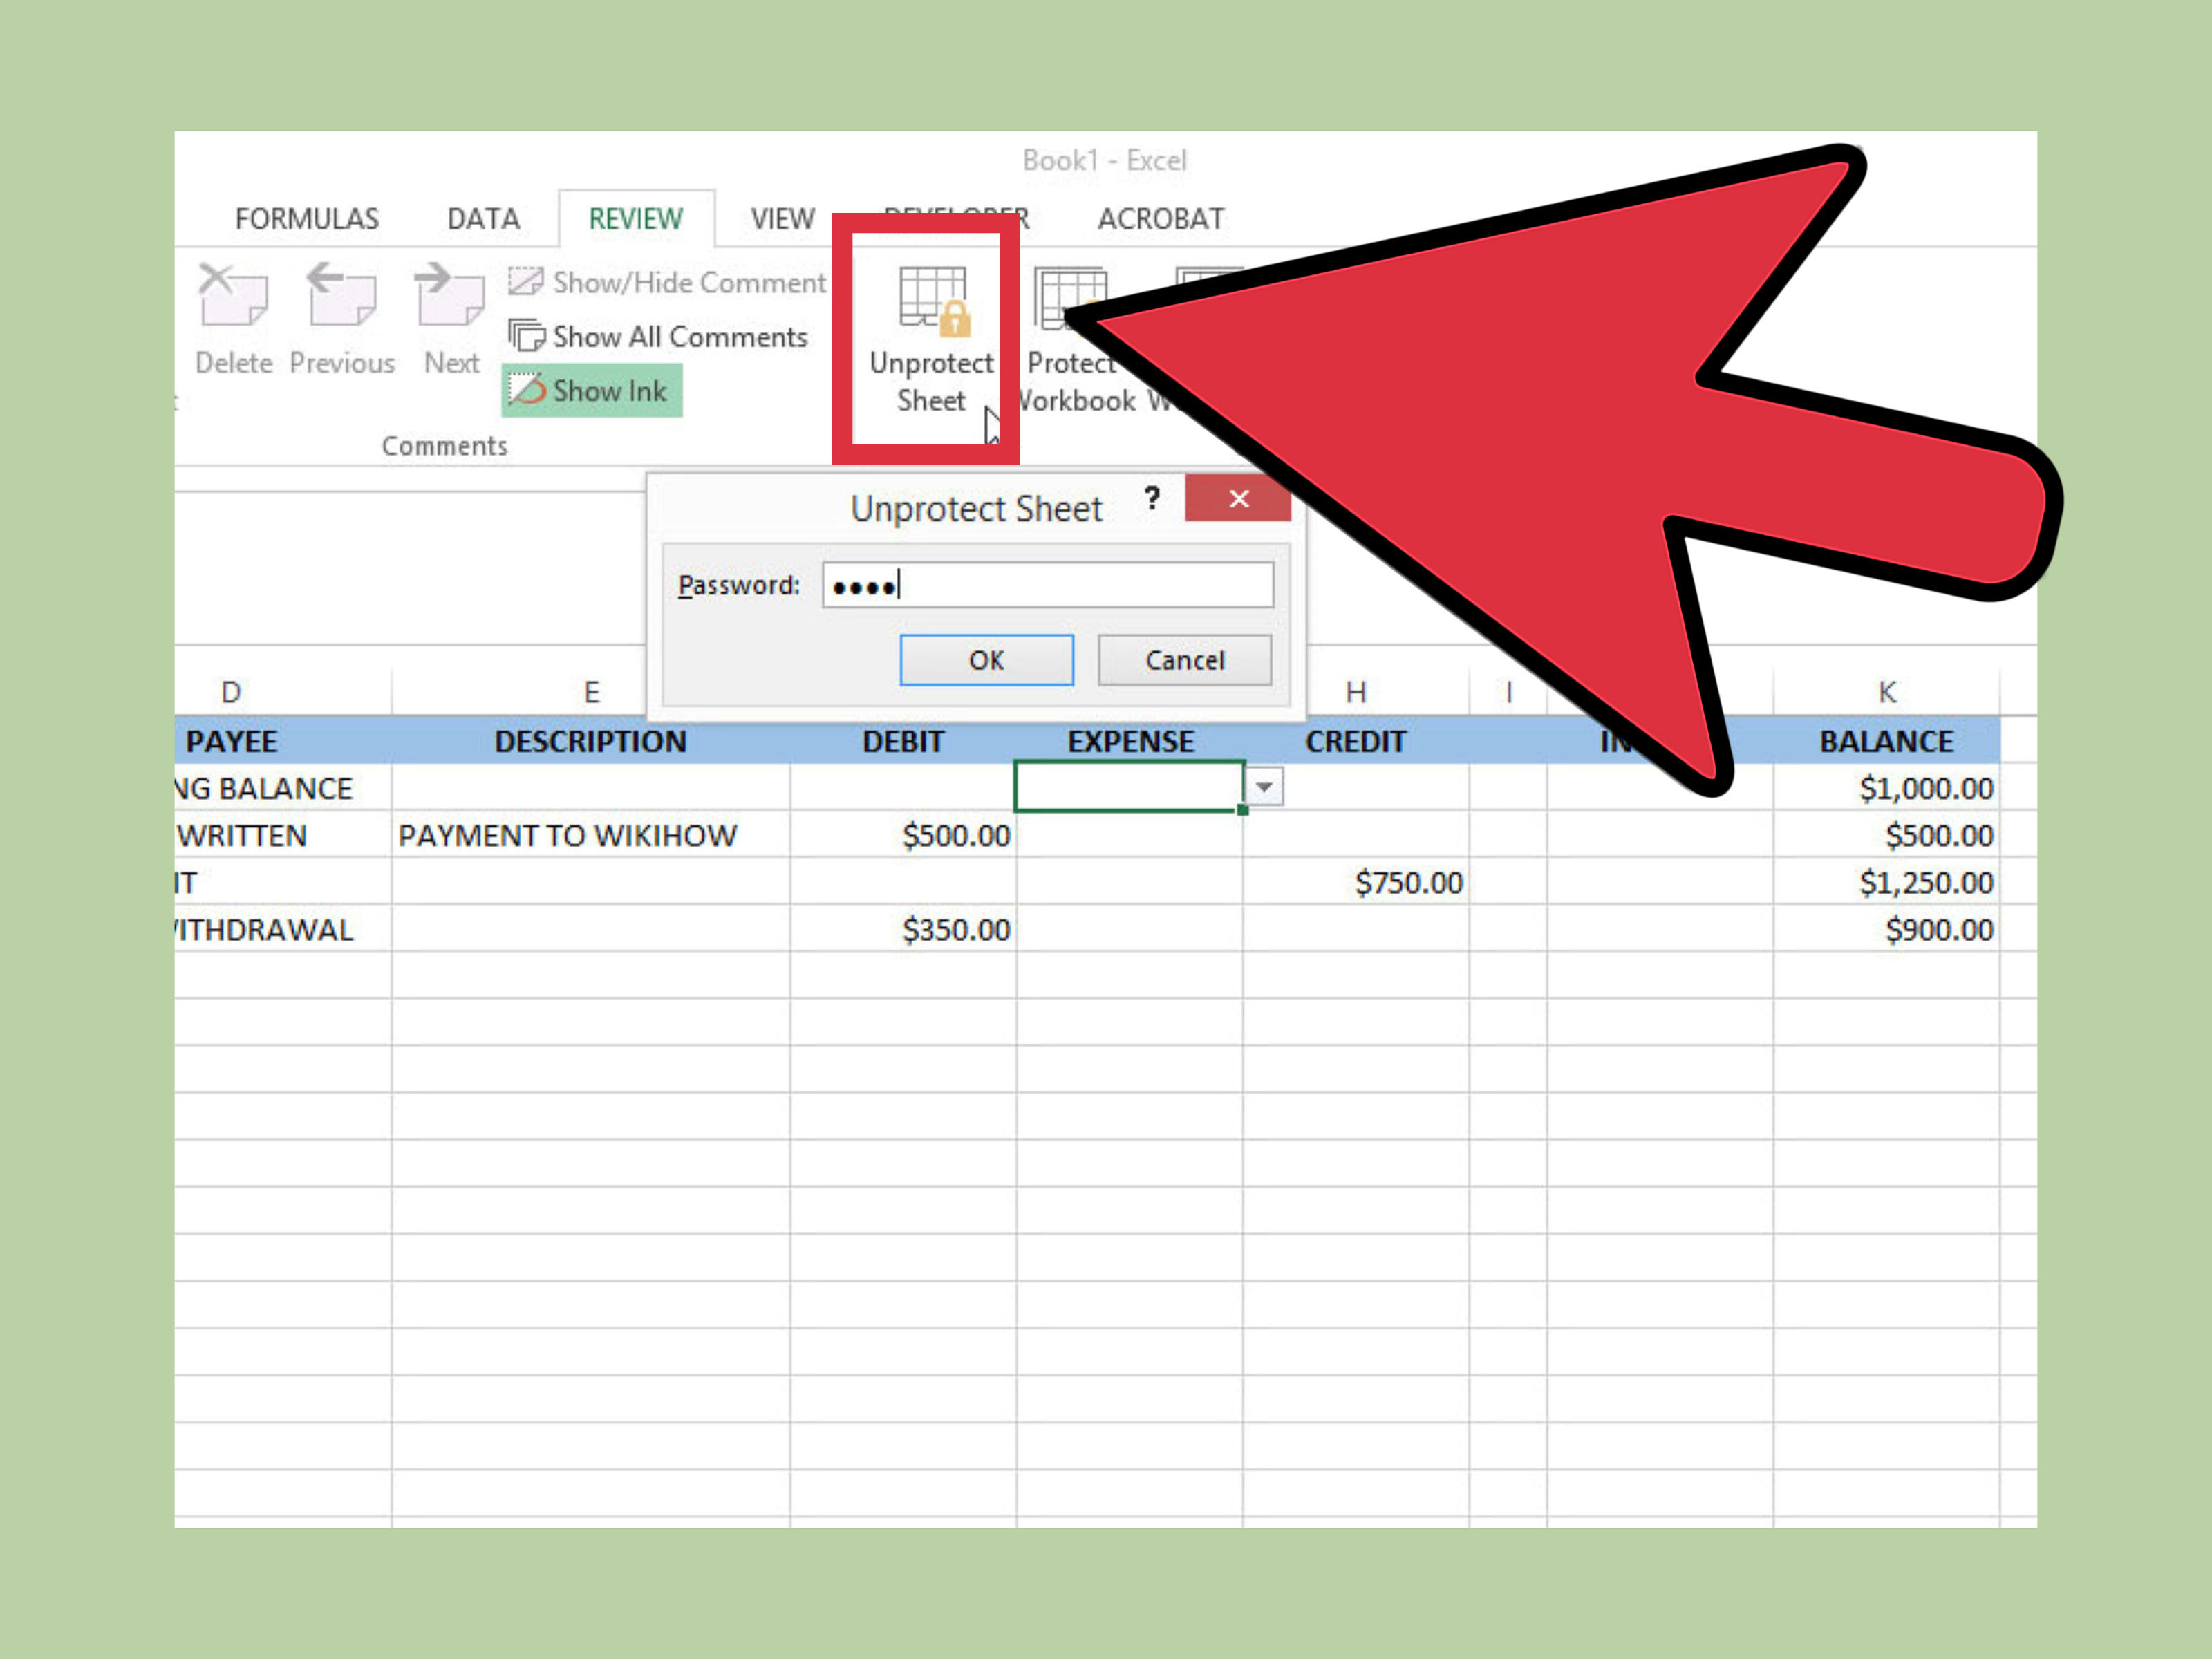 Share Excel Spreadsheet Online Regarding Share Excel Spreadsheet Online Elegant How To Create A Simple